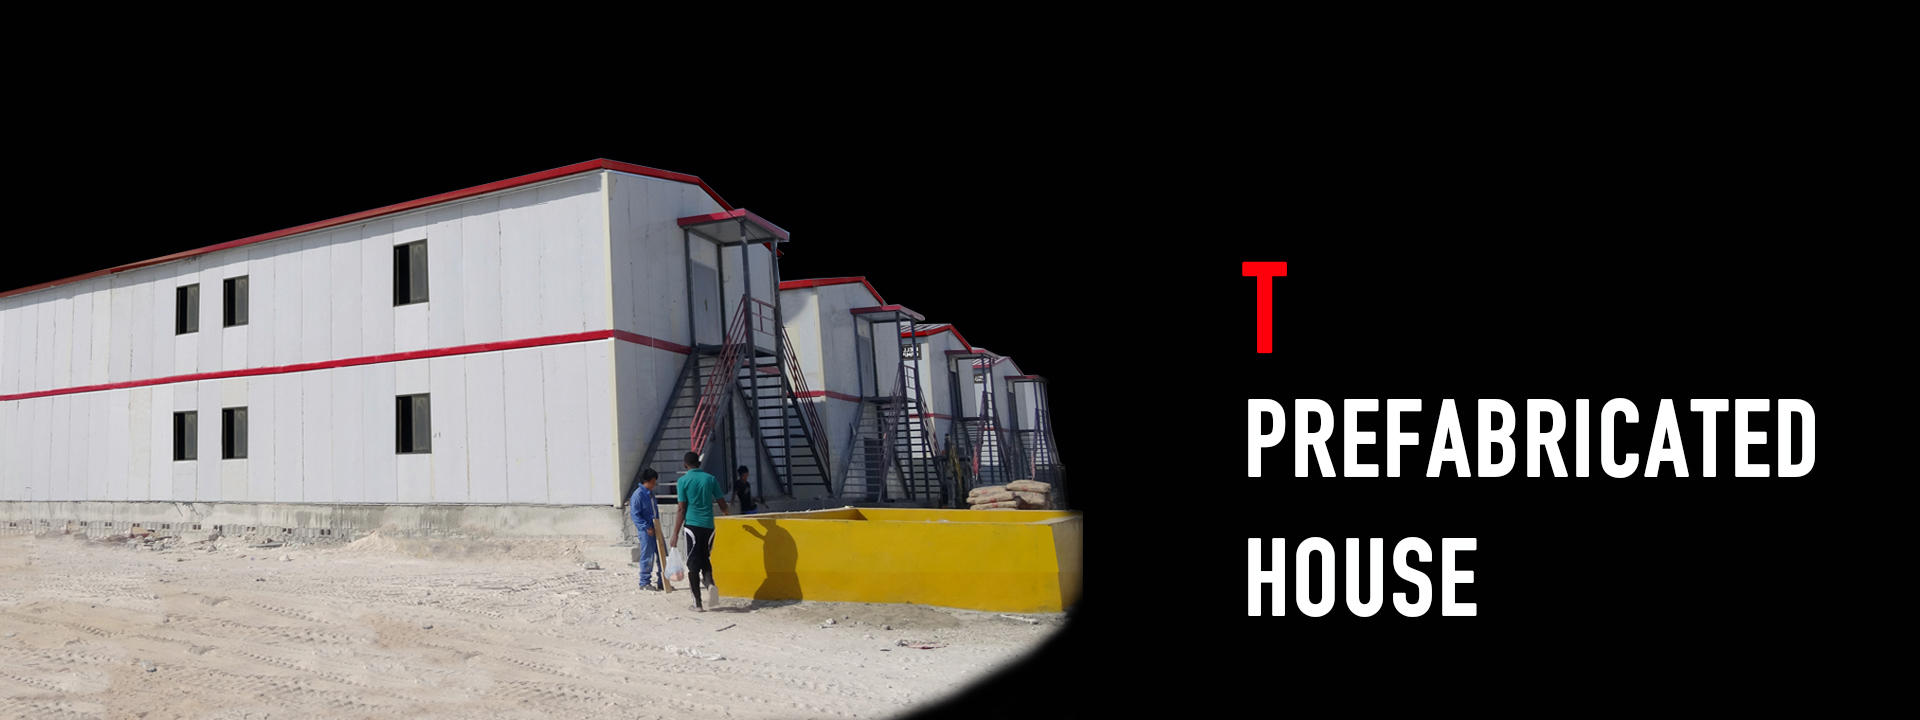 category-modular prefabricated house suppliers-WELLCAMP, WELLCAMP prefab house, WELLCAMP container h-1